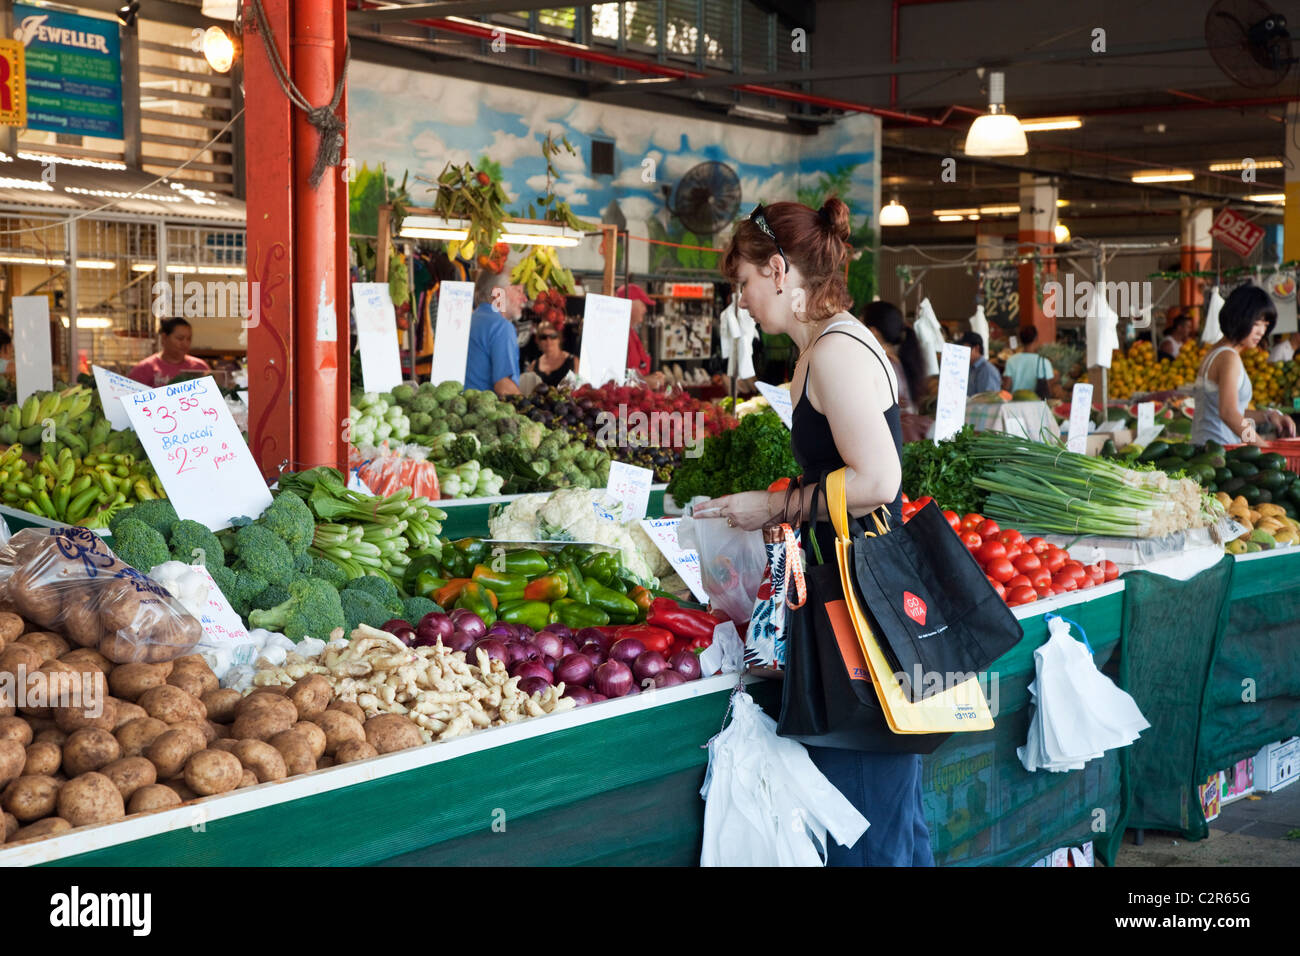 Shopping for fresh produce at Rusty's Markets. Cairns, Queensland, Australia - Stock Image